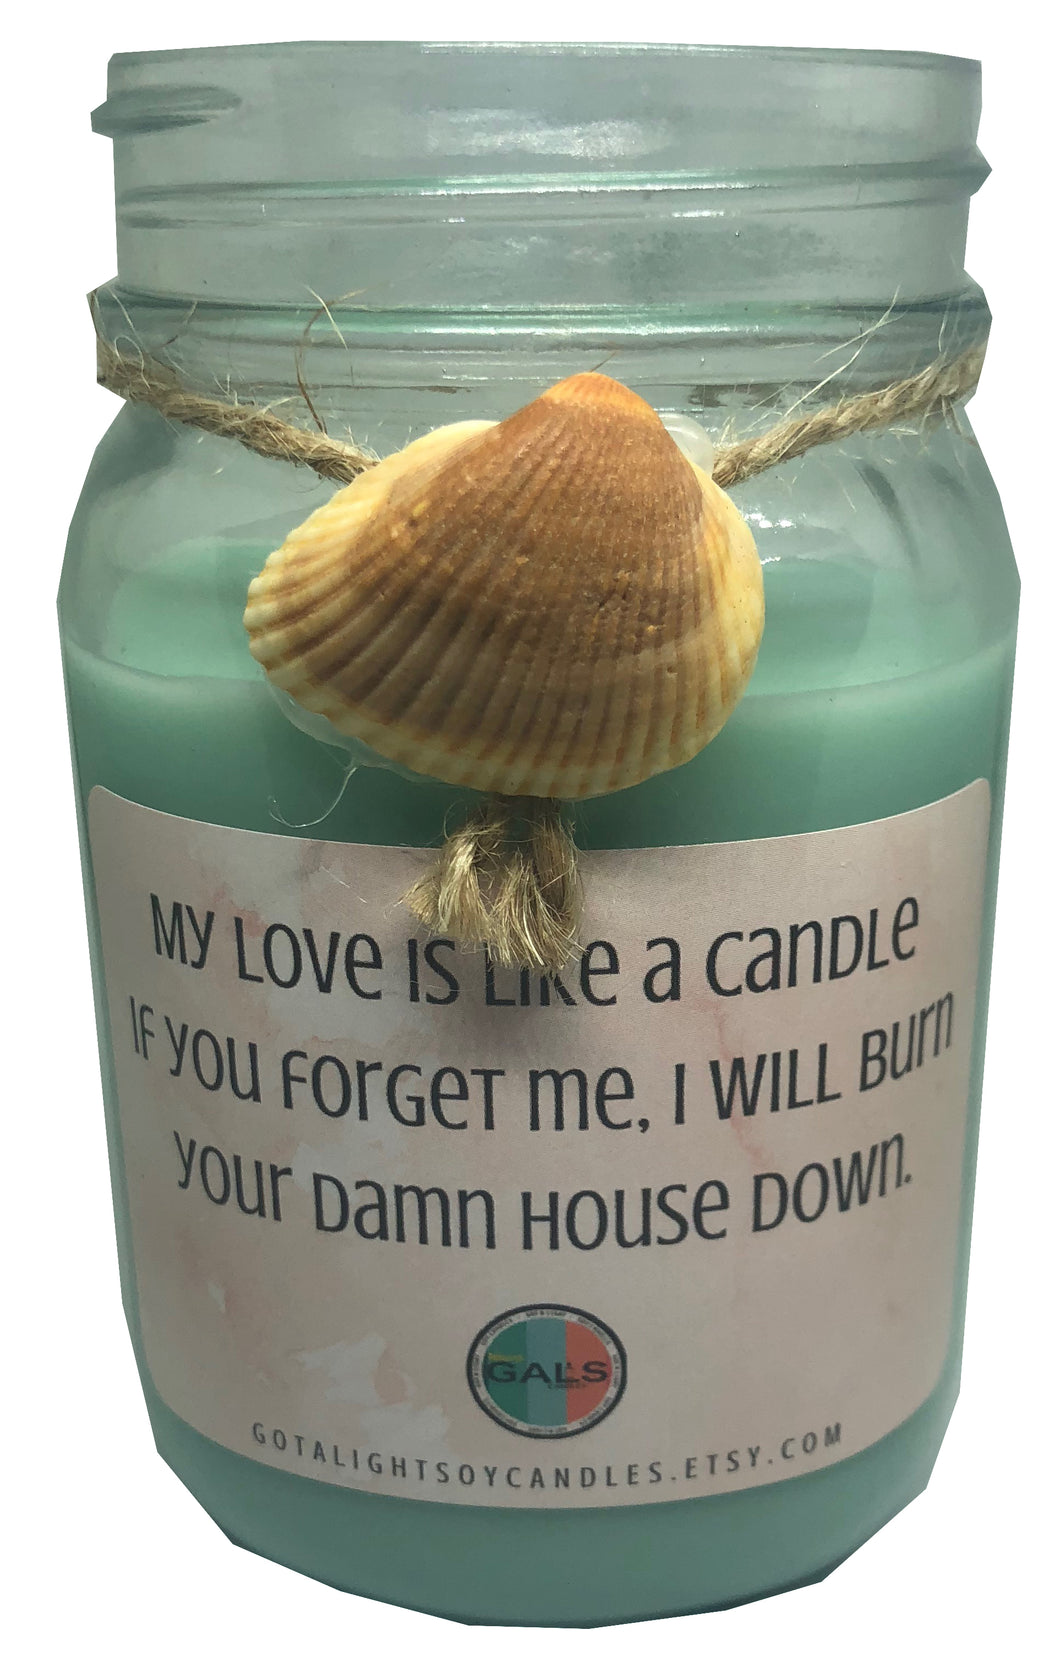 My Love Is Like a Candle Sea Mist Scent 16oz Mason Jar Soy Wax Organic Candle, [product_type], Got A Light Soy Candles, [variant_title]